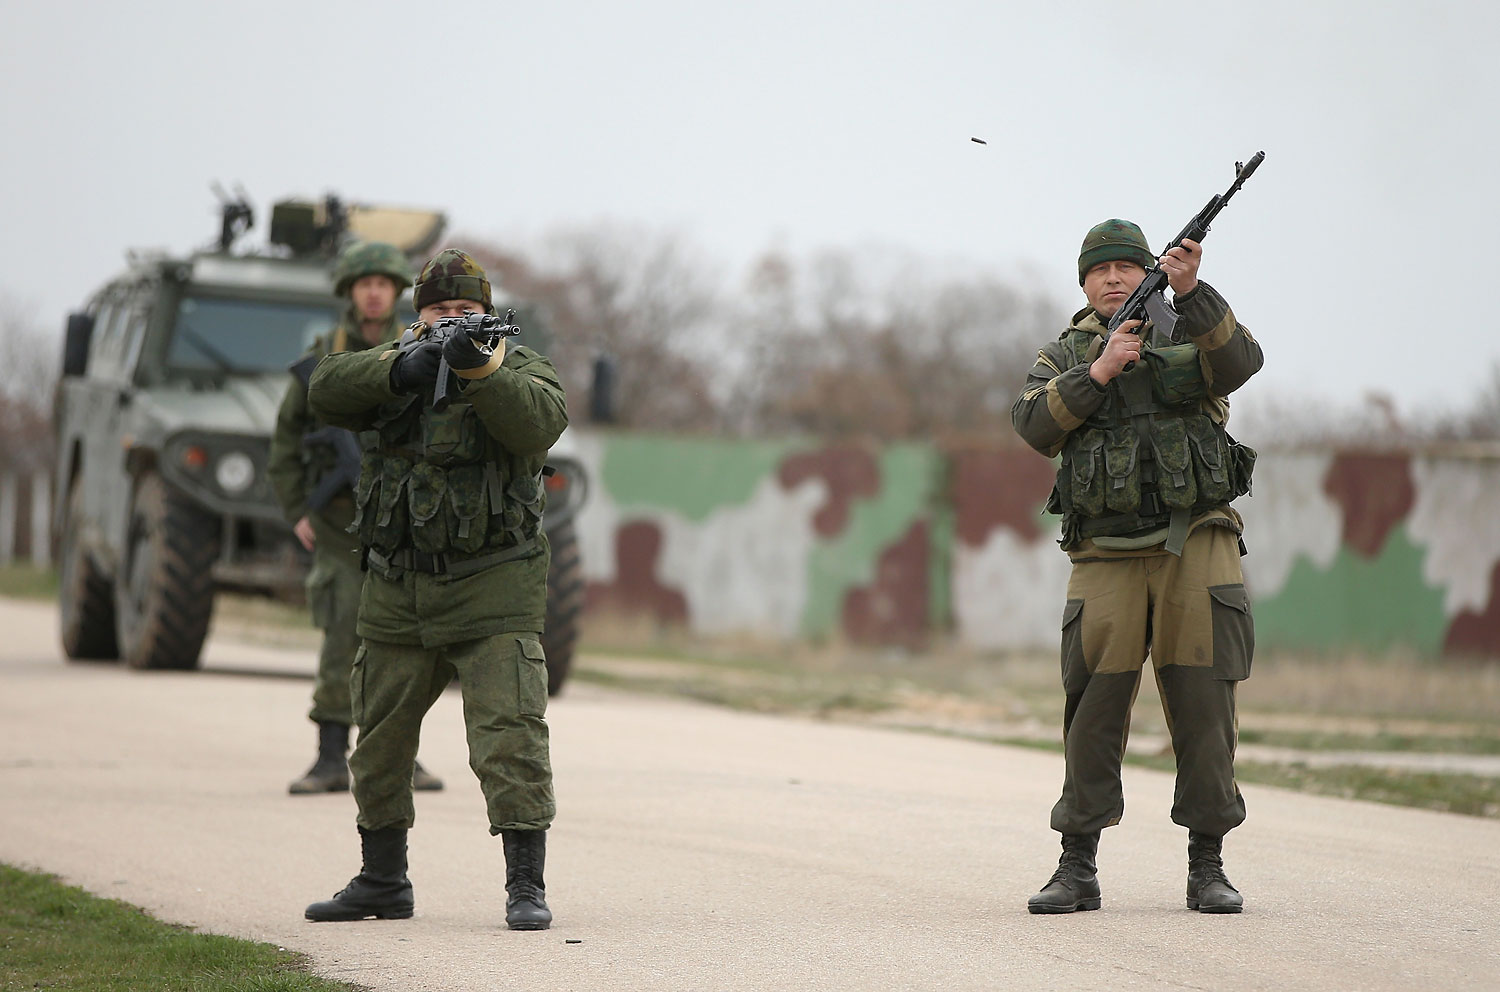 Troops under Russian command fire weapons into the air and scream orders to turn back at an approaching group of over 100 hundred unarmed Ukrainian troops at the Belbek airbase, which the Russian troops are occcupying, in Lubimovka, Crimea on March 4, 2014.